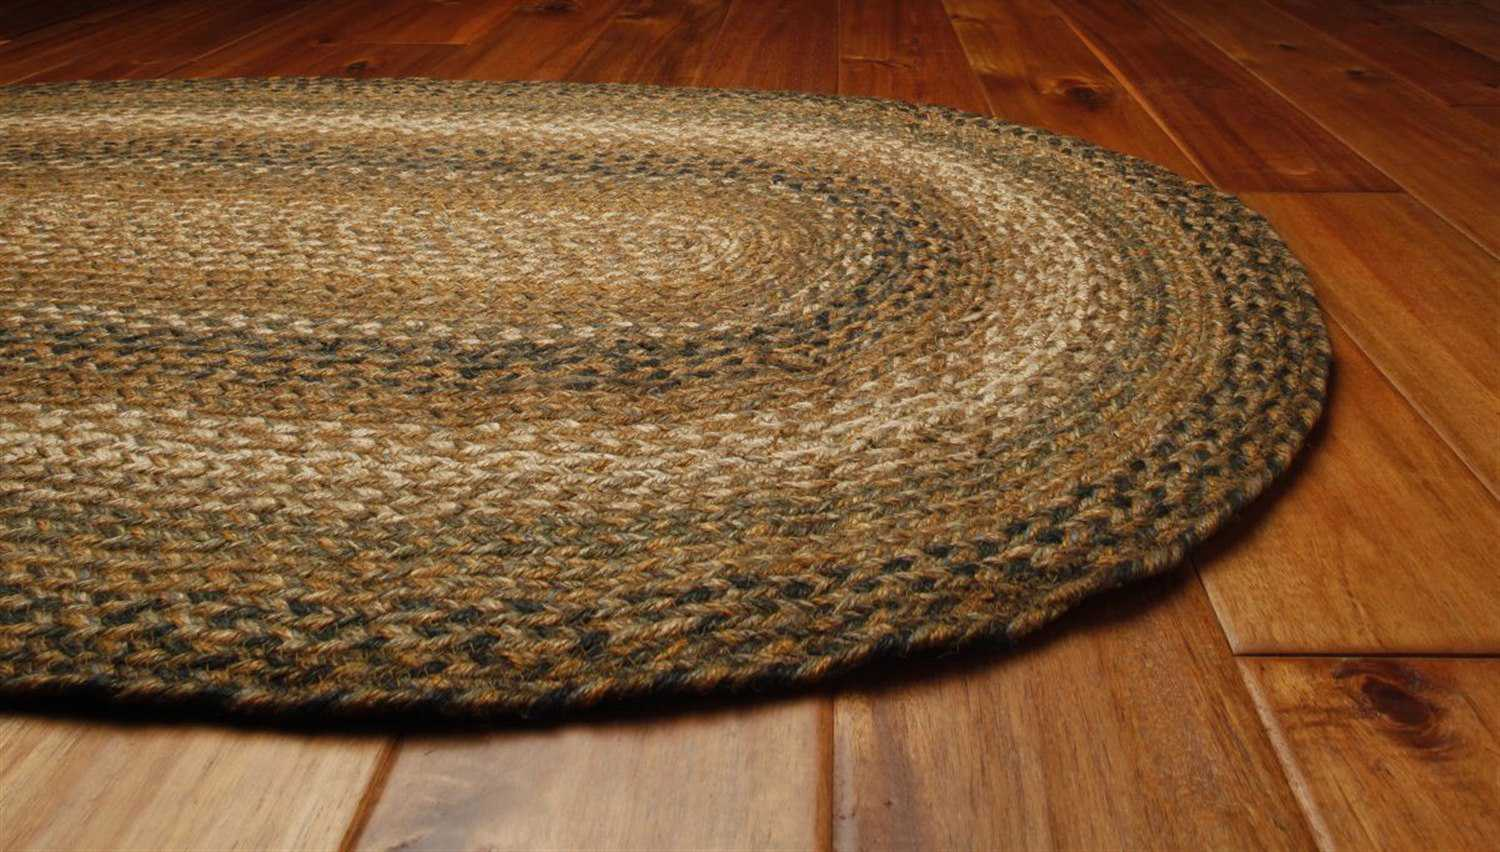 Homespice Decor Jute Braided Oval Brown Area Rug Hocoffeeova